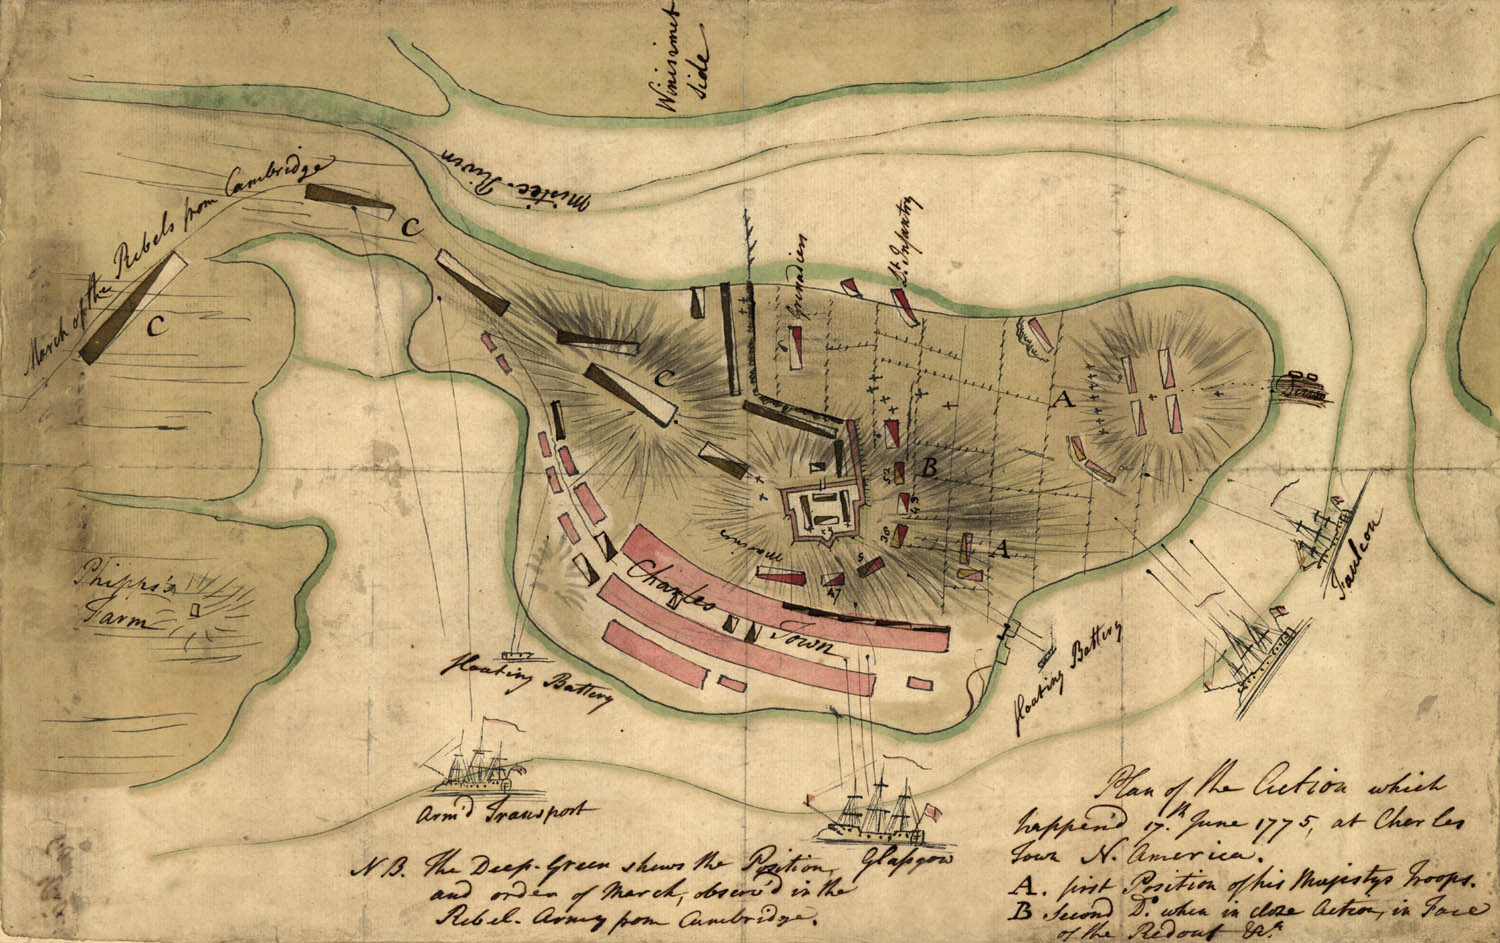 account of the battle of bunker hill during the american revolution During the building of fortifications near bunker hill, american forces were  attacked by the british this resulted in the battle of bunker hill.